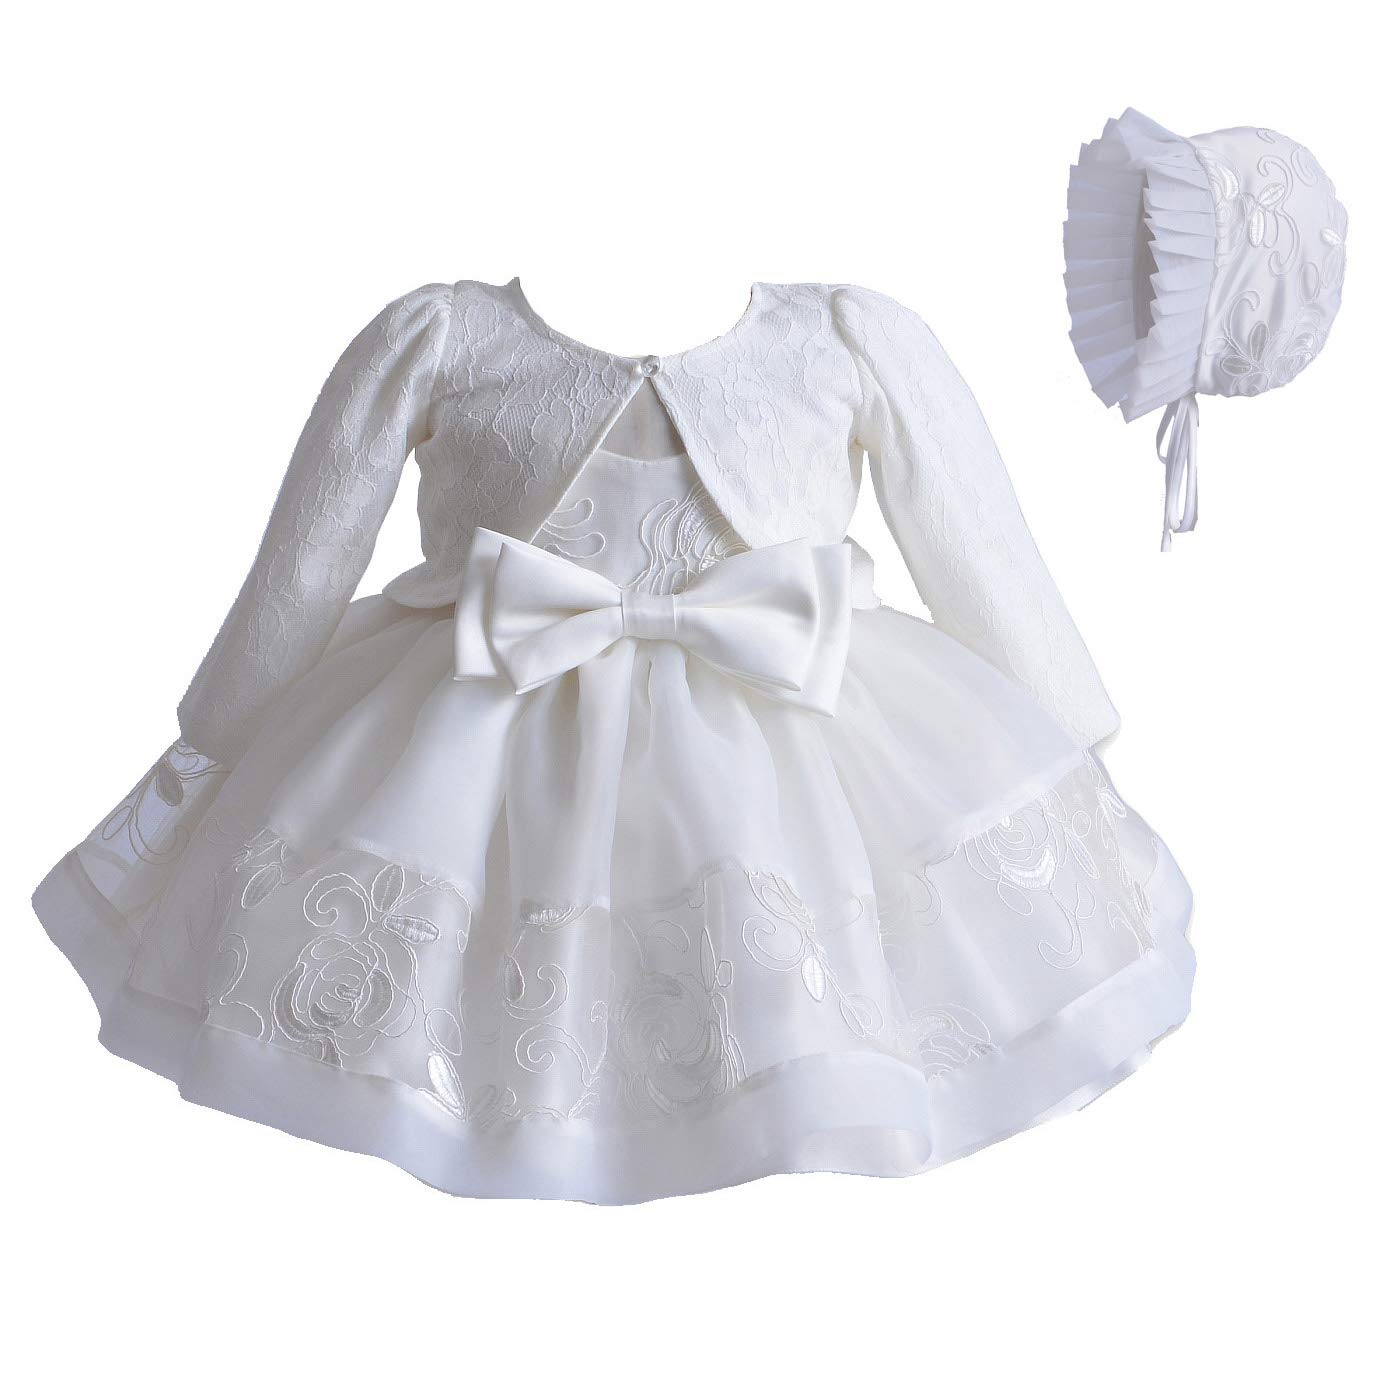 Cinda Baby Girls Ivory Lace Christening Party Dress Bonnet 802